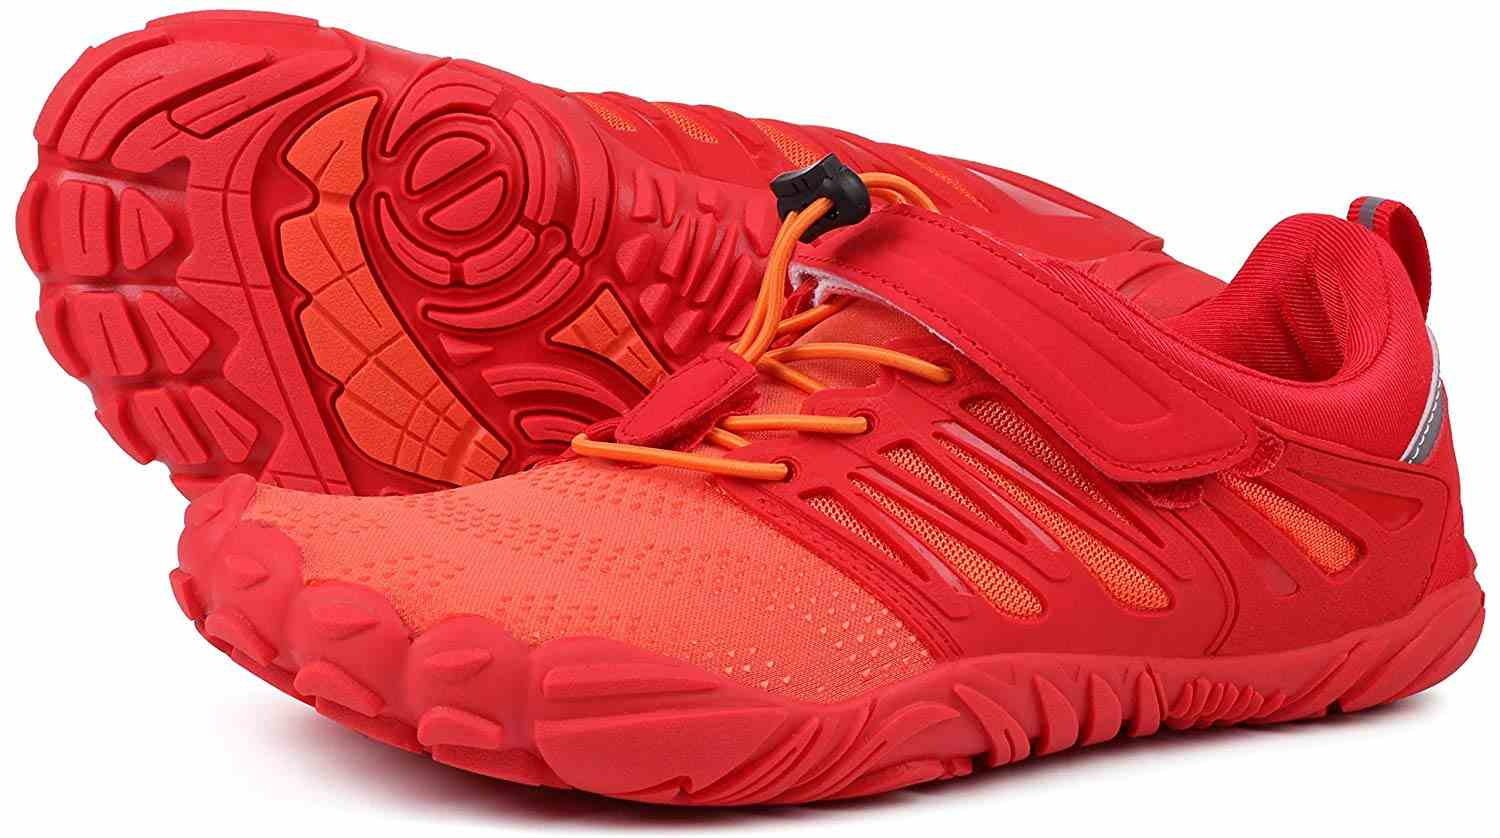 Women's Minimalist Trail Running Barefoot Shoes